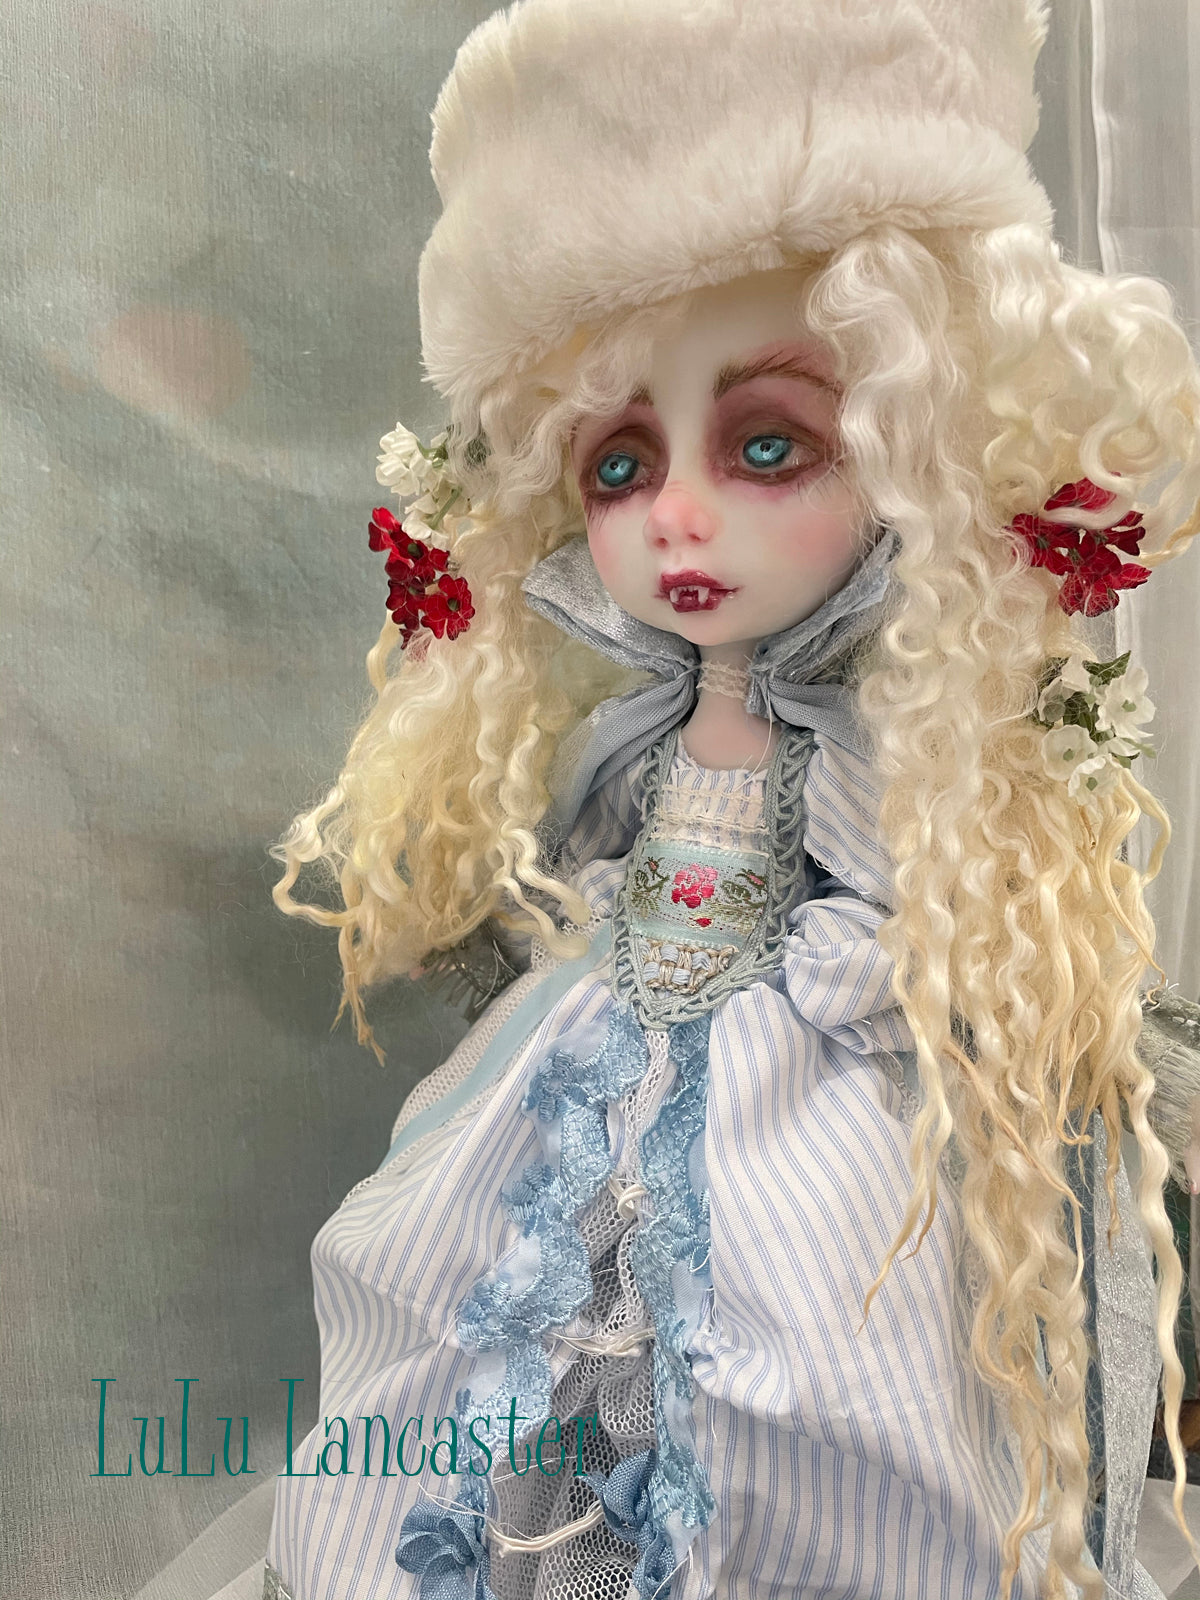 Astrid the Winter Vampire Original LuLu Lancaster Art Doll